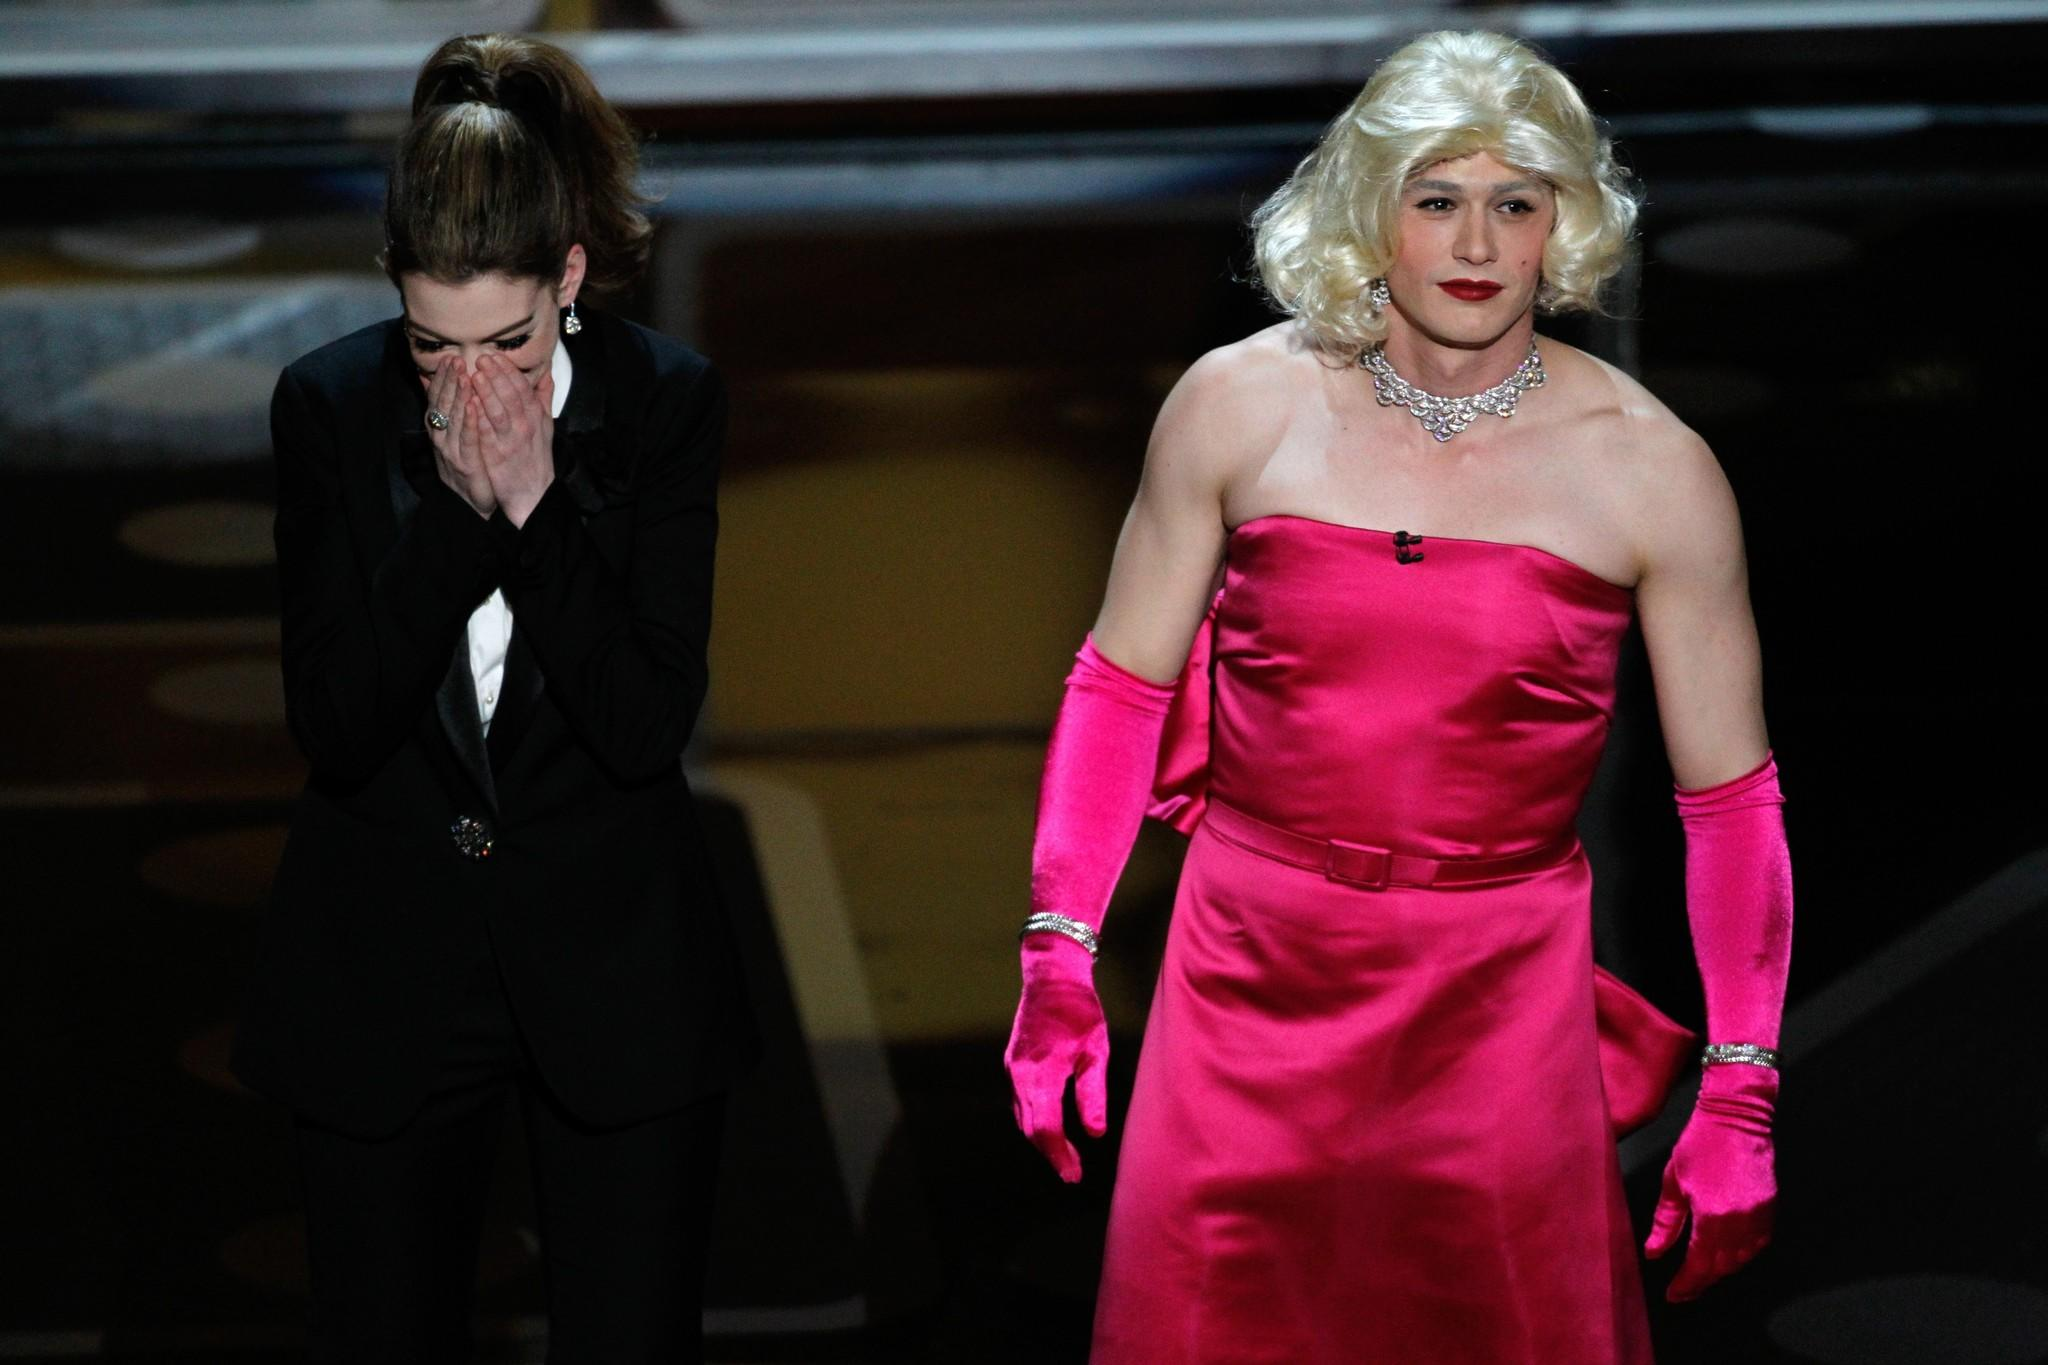 After party Oscar-2016: the stars walked after the ceremony - photos